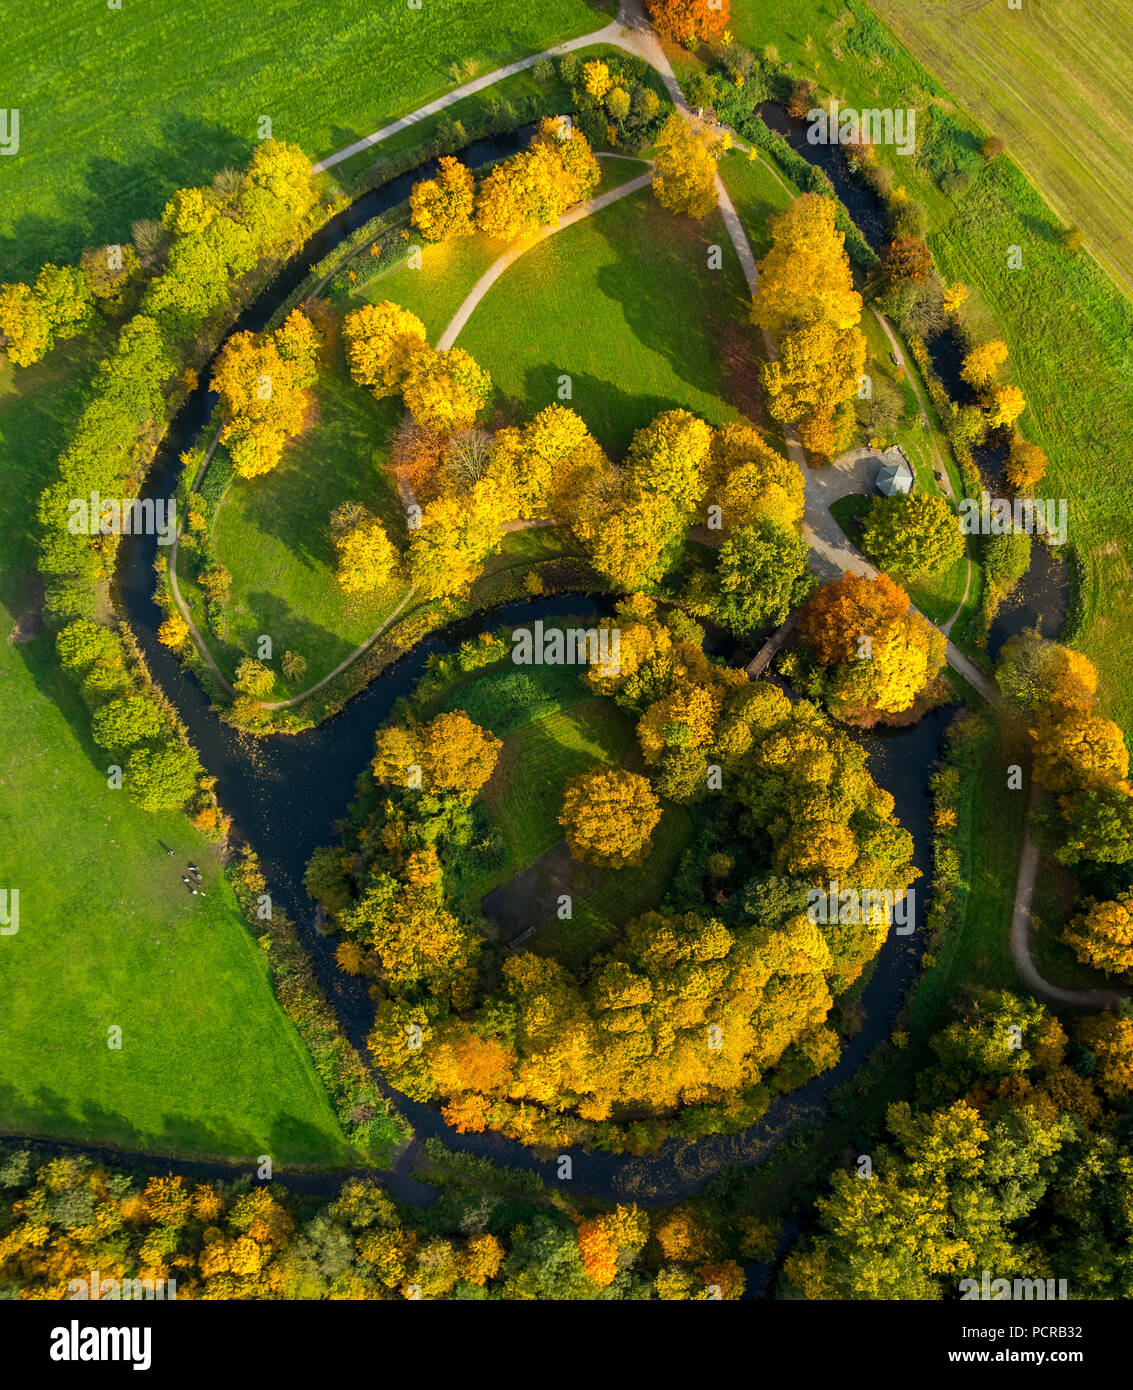 Castle Hill Mark, nucleus of the city of Hamm, former site of the castle Mark, Hamm, Ruhr area, North Rhine-Westphalia, Germany - Stock Image